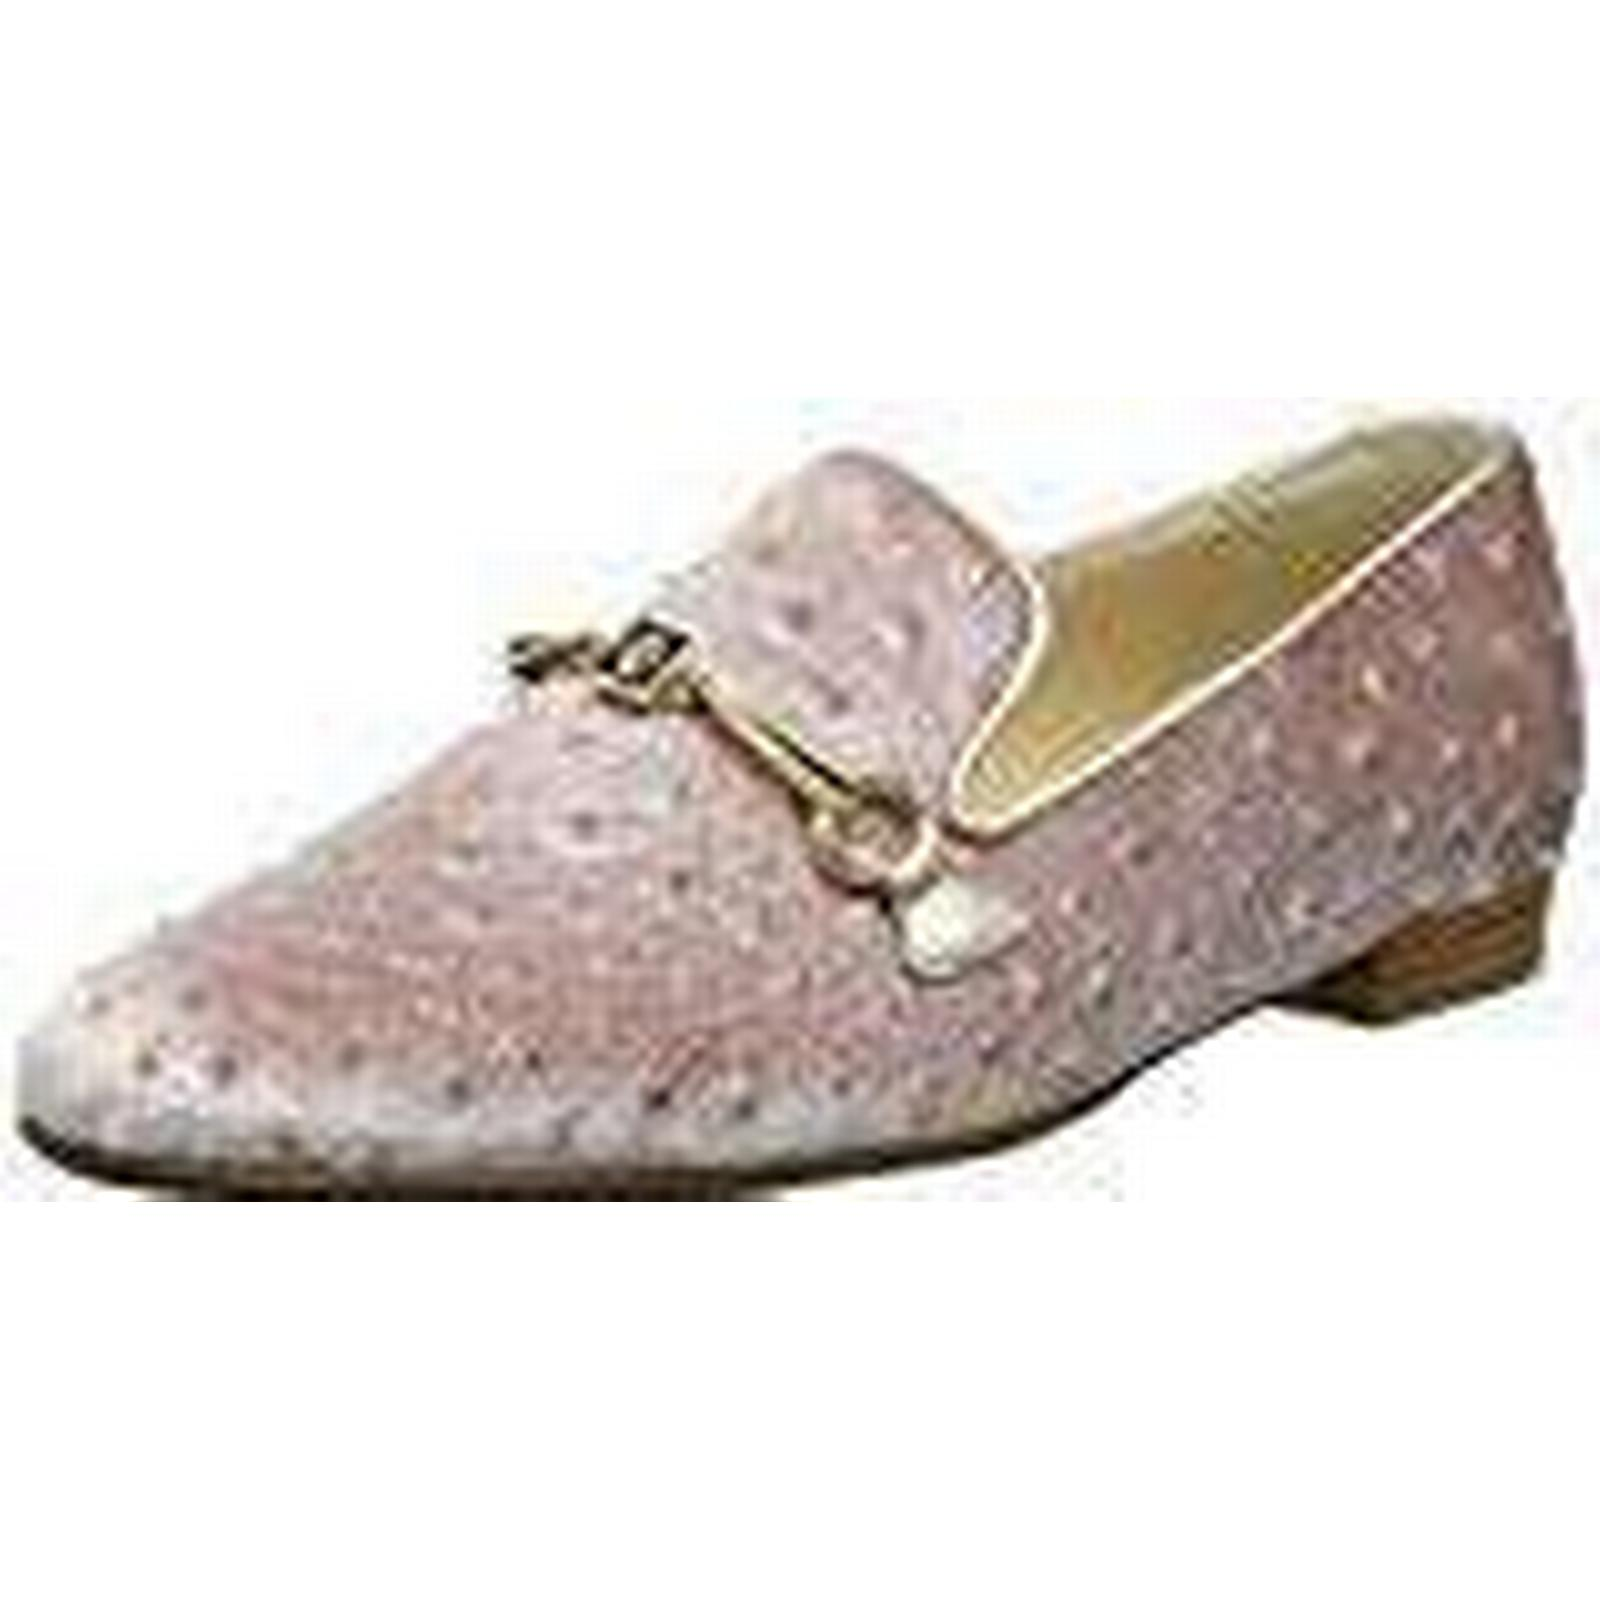 HÖGL Women's 5-10 1616 5 4700 Loafers, Beige (Rose), 5 1616 UK b98126